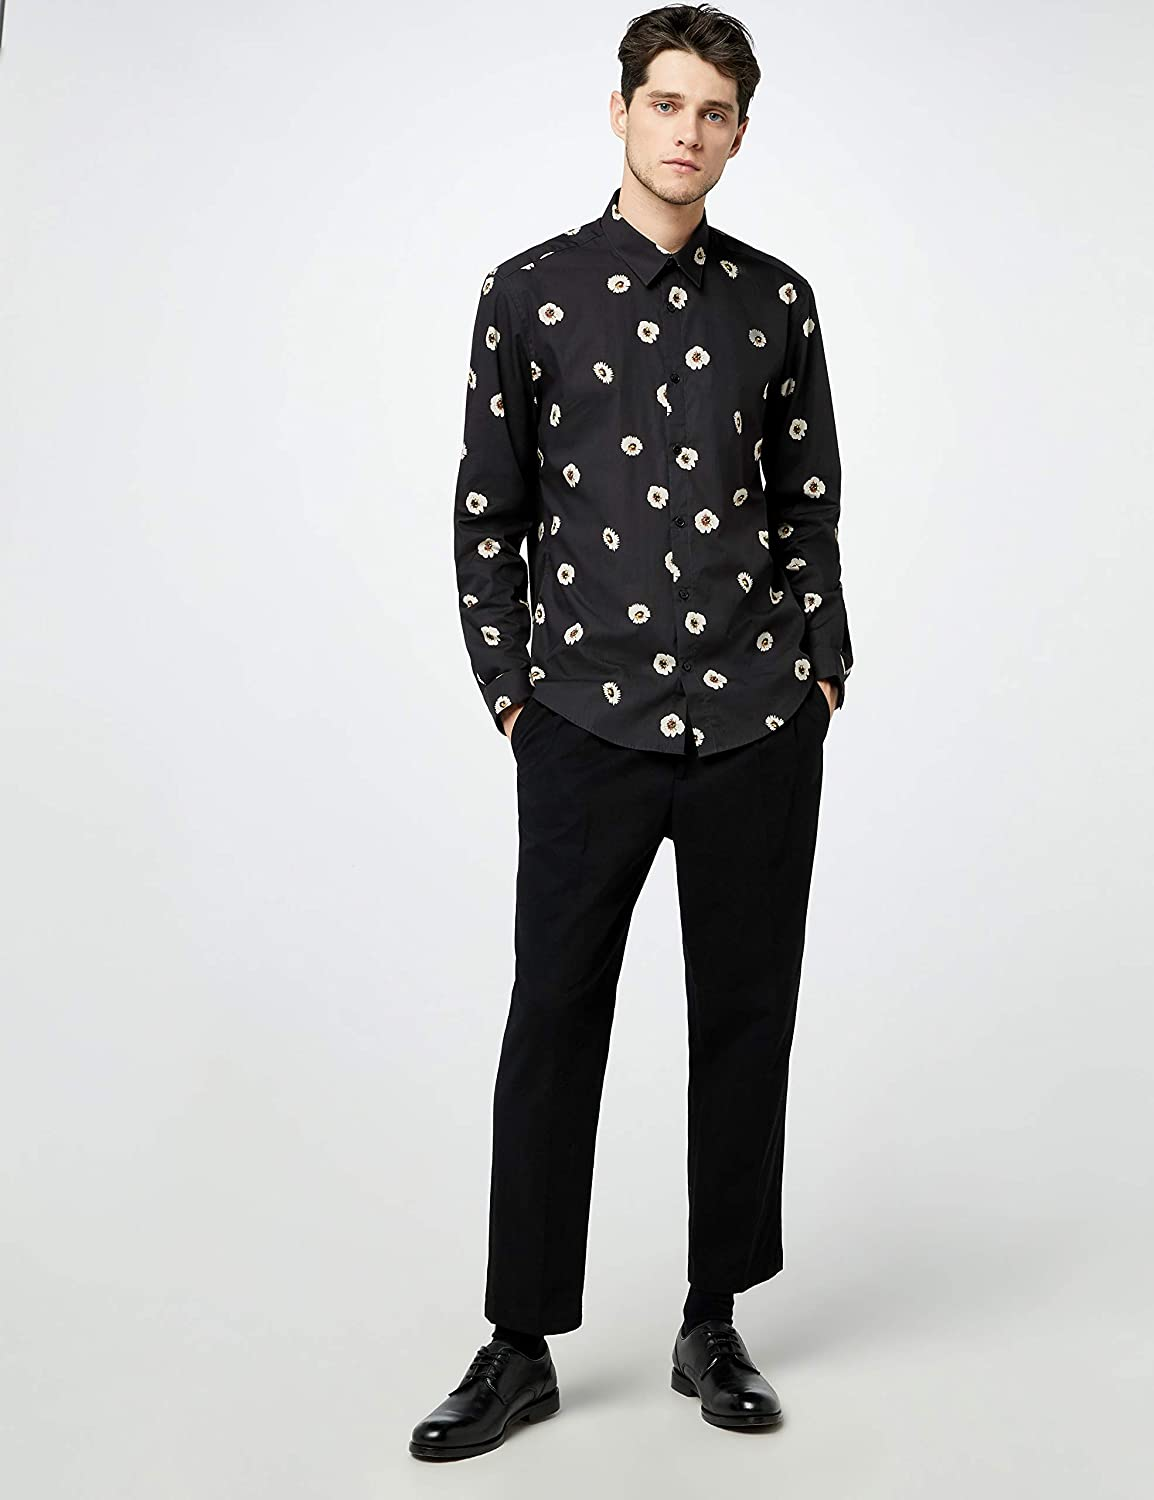 find. Men's Floral Print Shirt